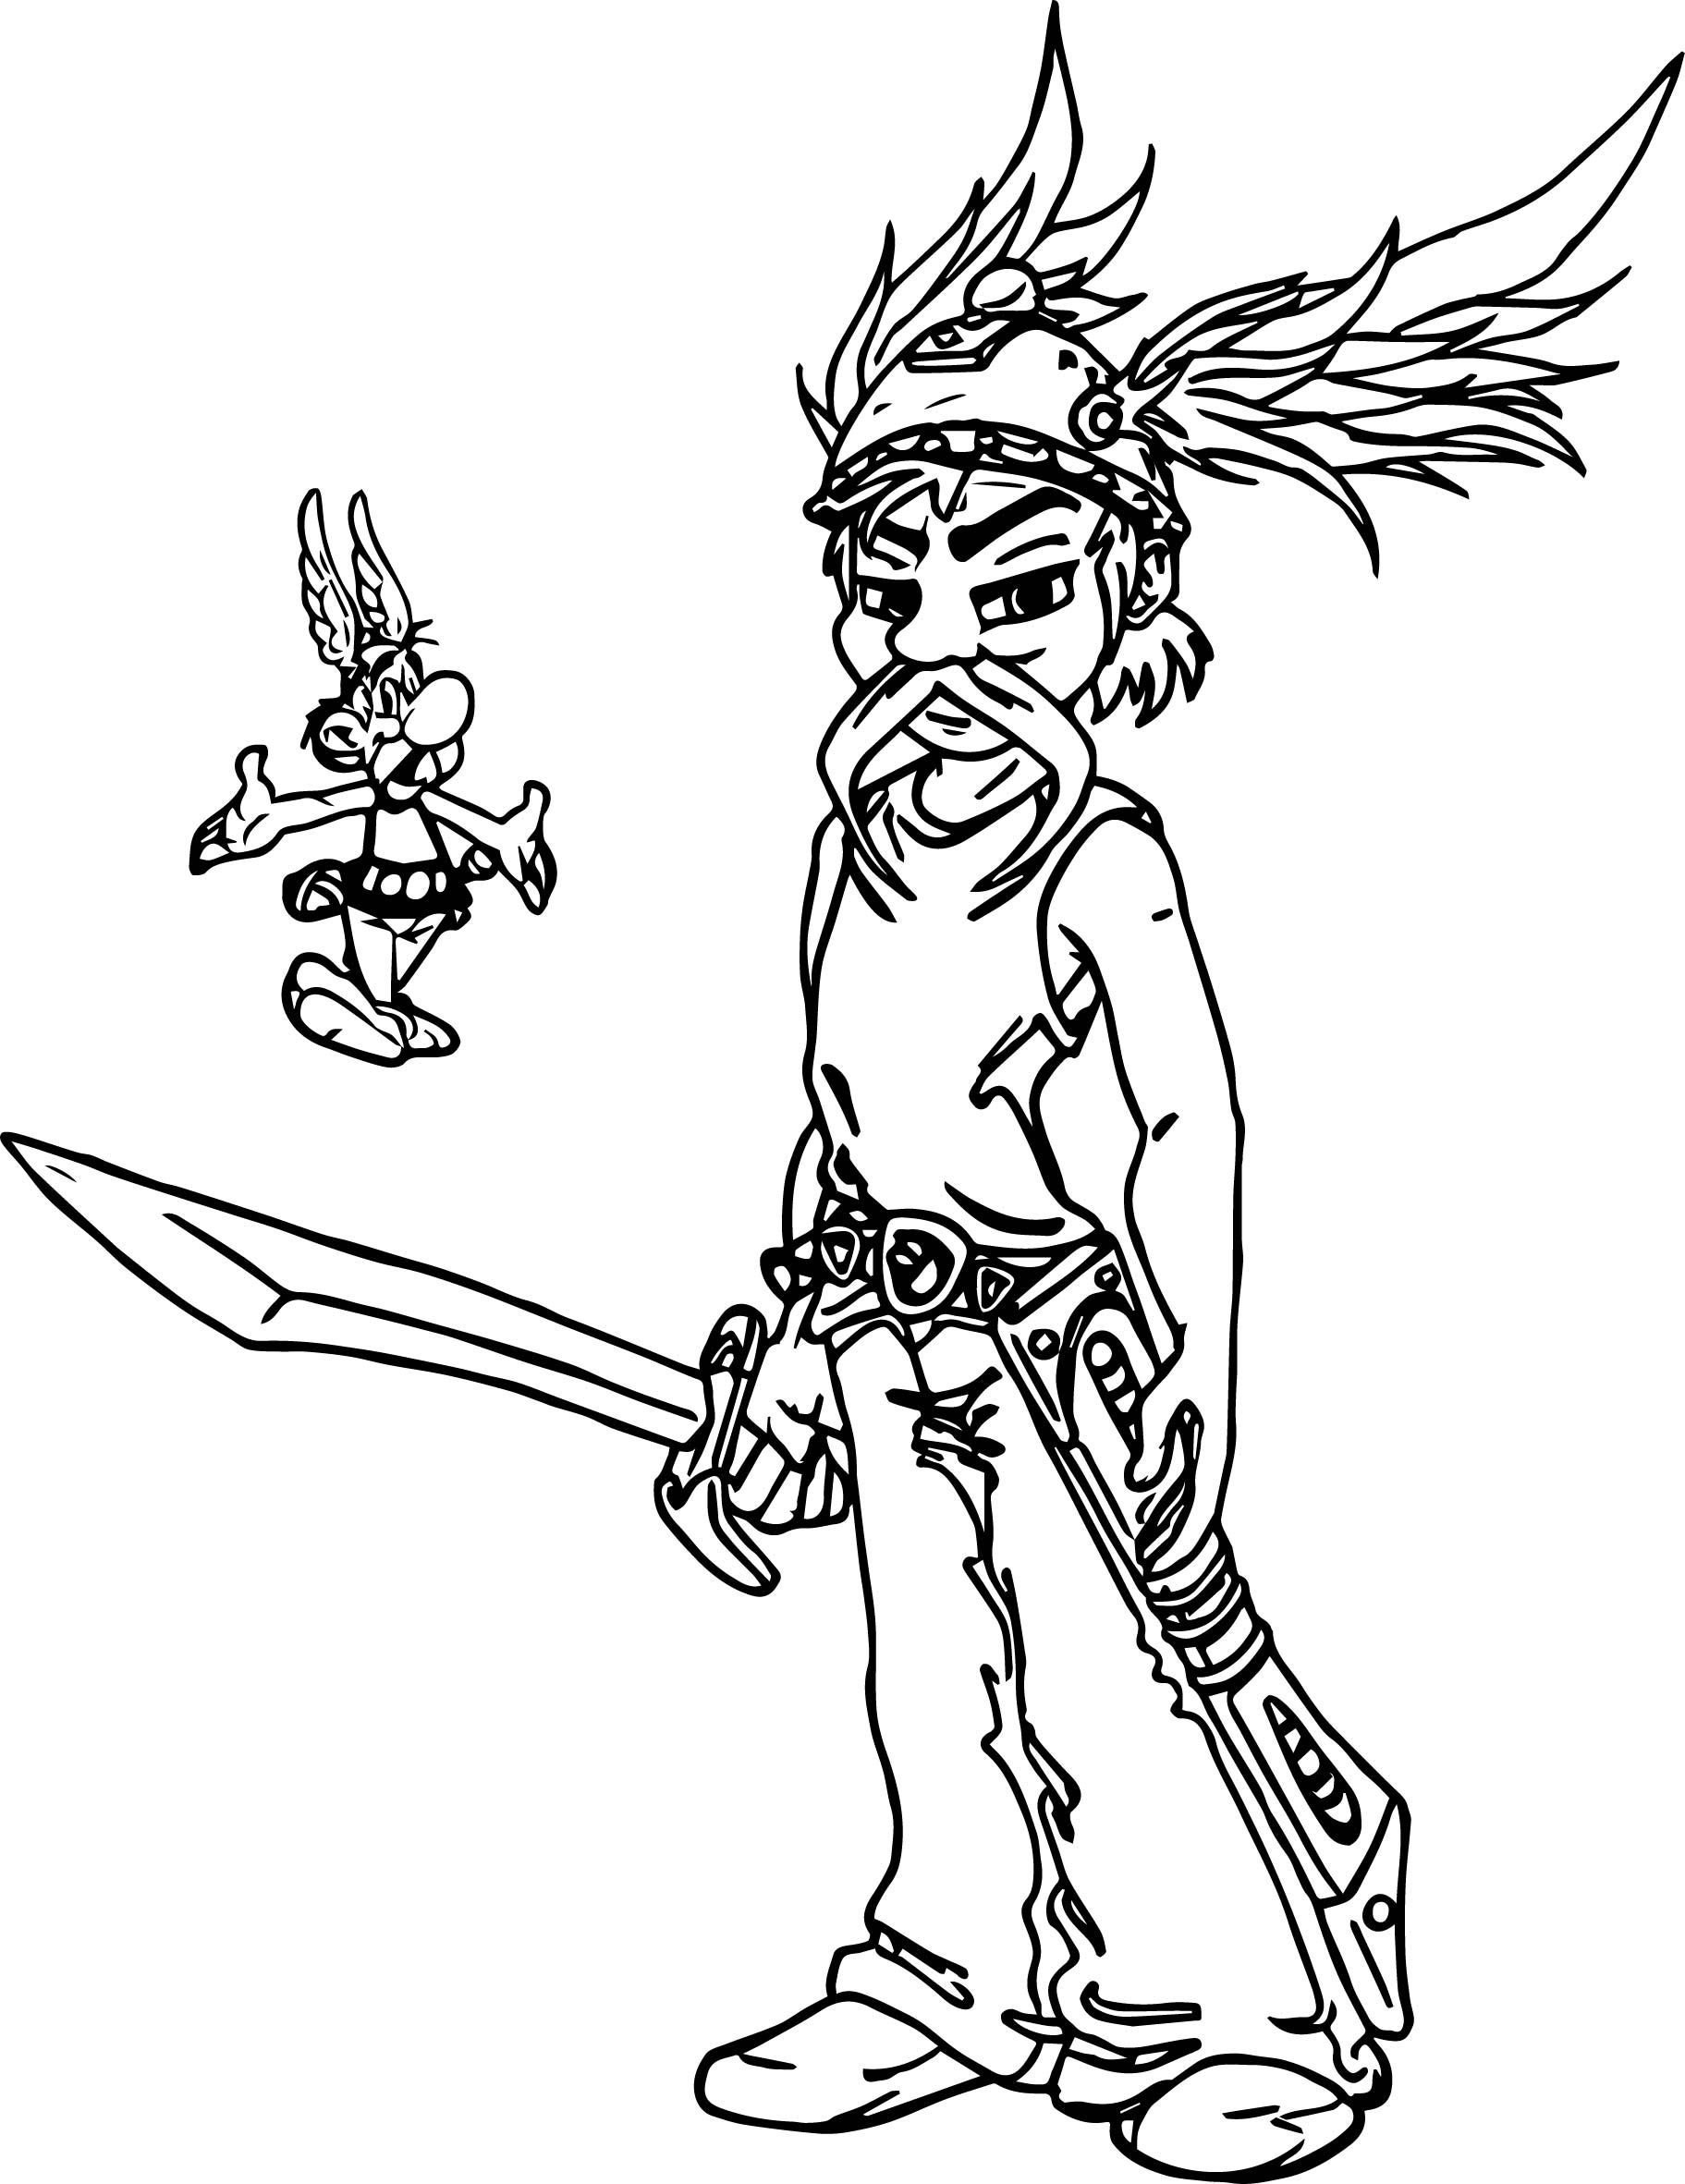 Asterix Evolution Coloring Page